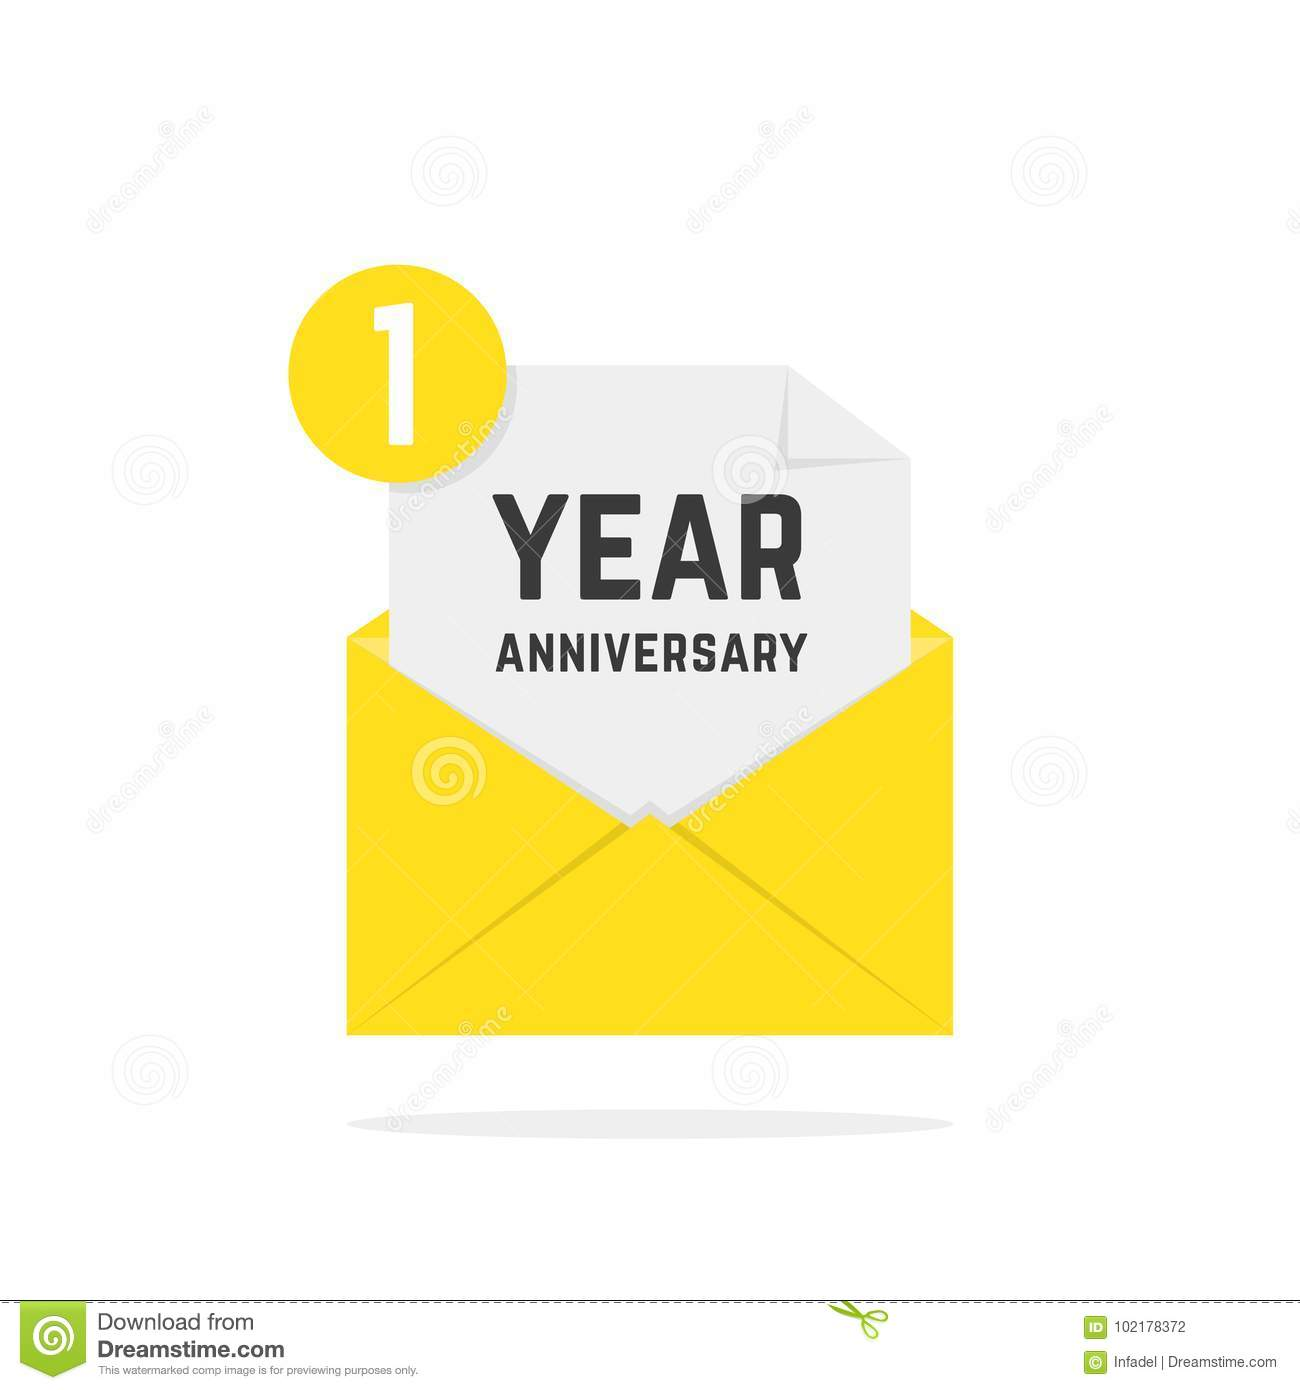 1 Year Anniversary Icon In Yellow Letter Stock Vector - Illustration